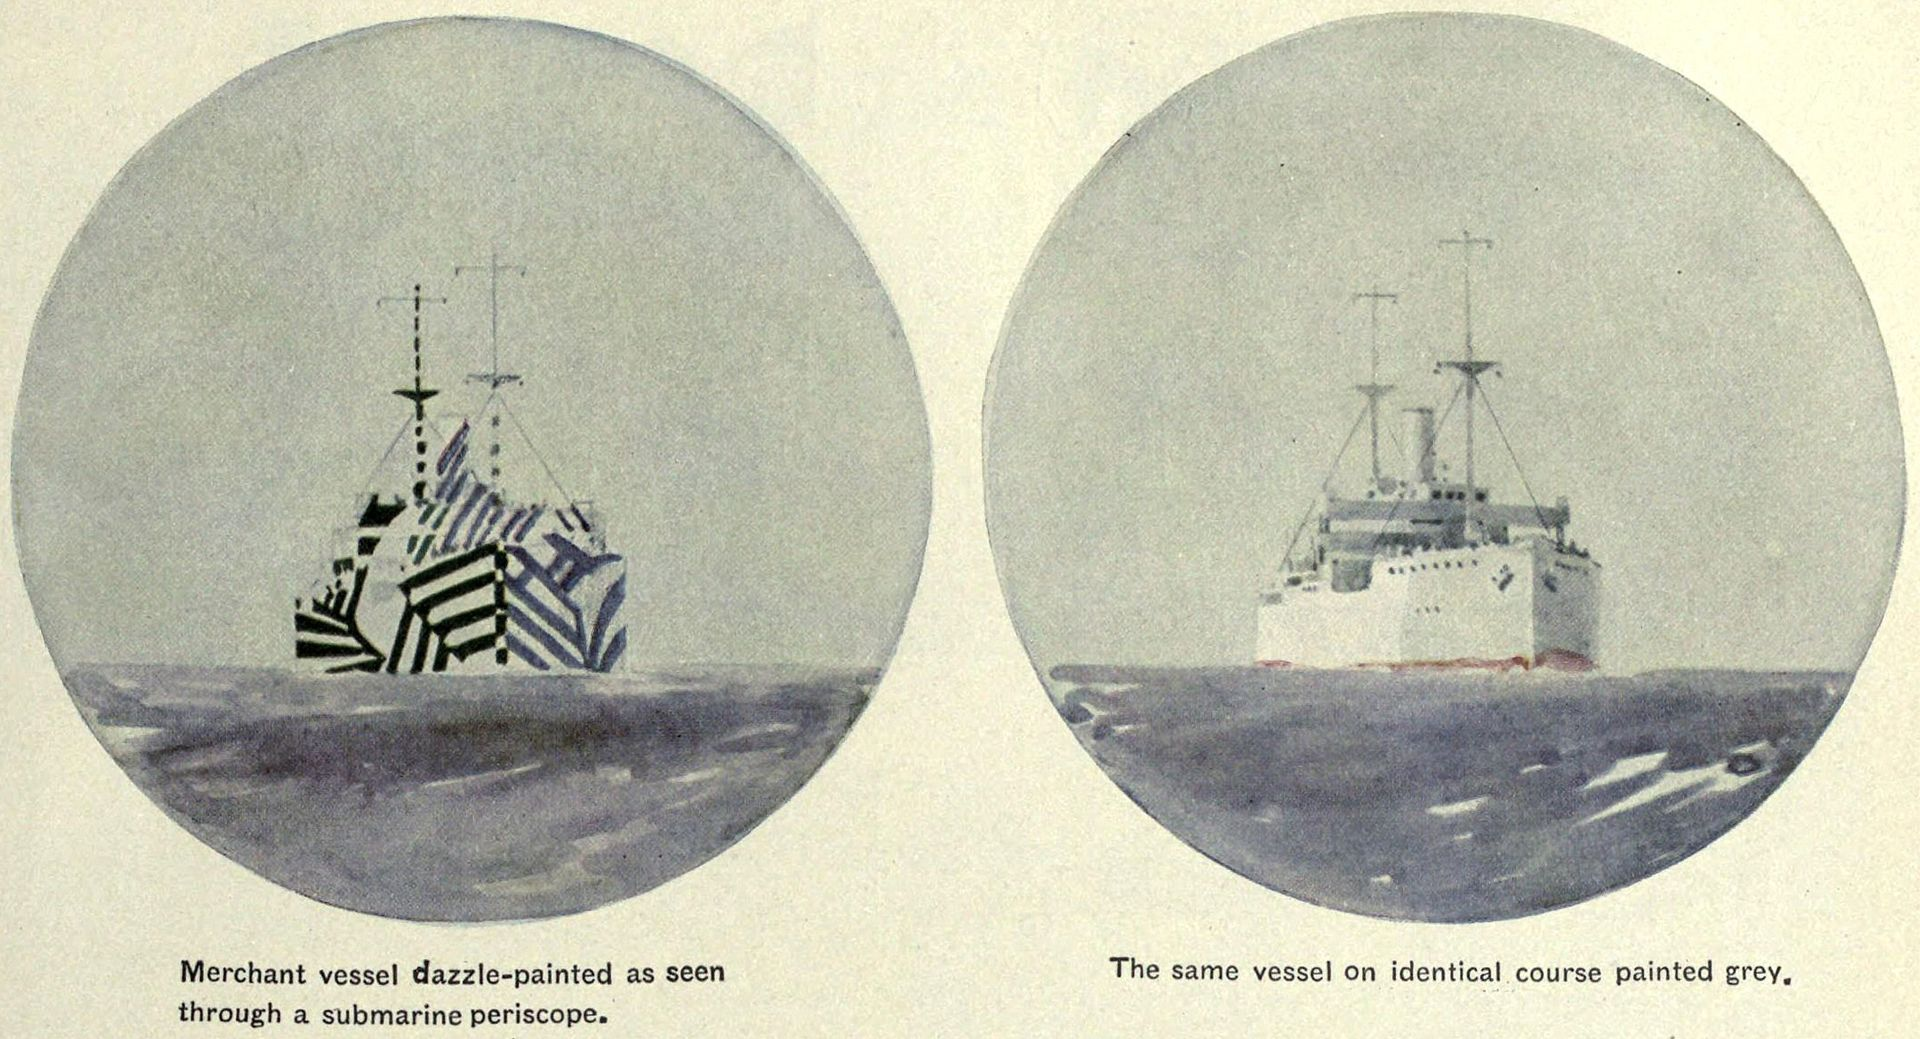 1920px-EB1922_Camouflage_Periscope_View.